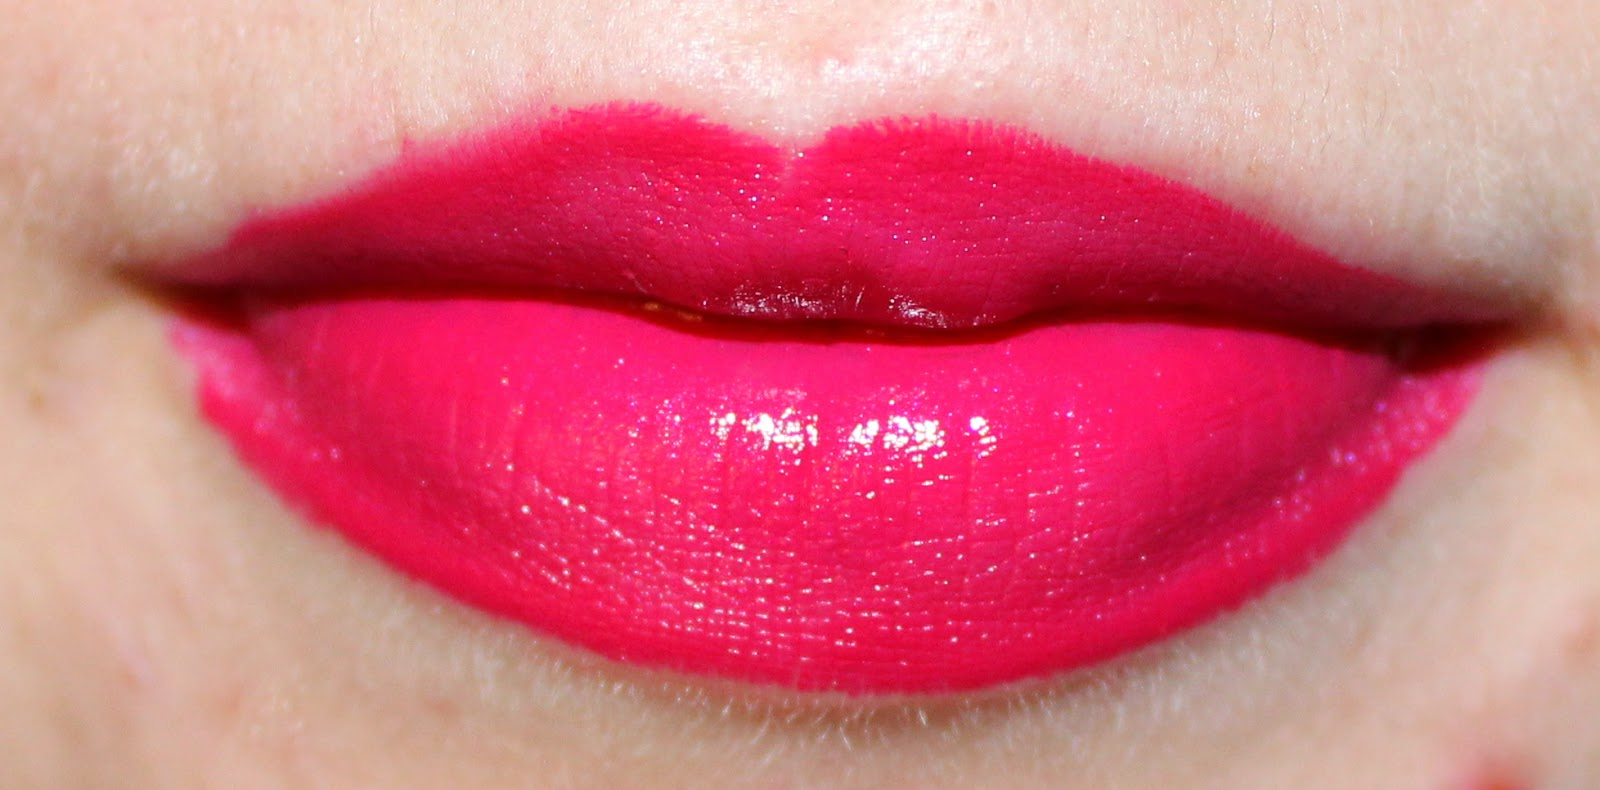 Rimmel Moisture Renew Lipstick in #360 As You Want Victoria